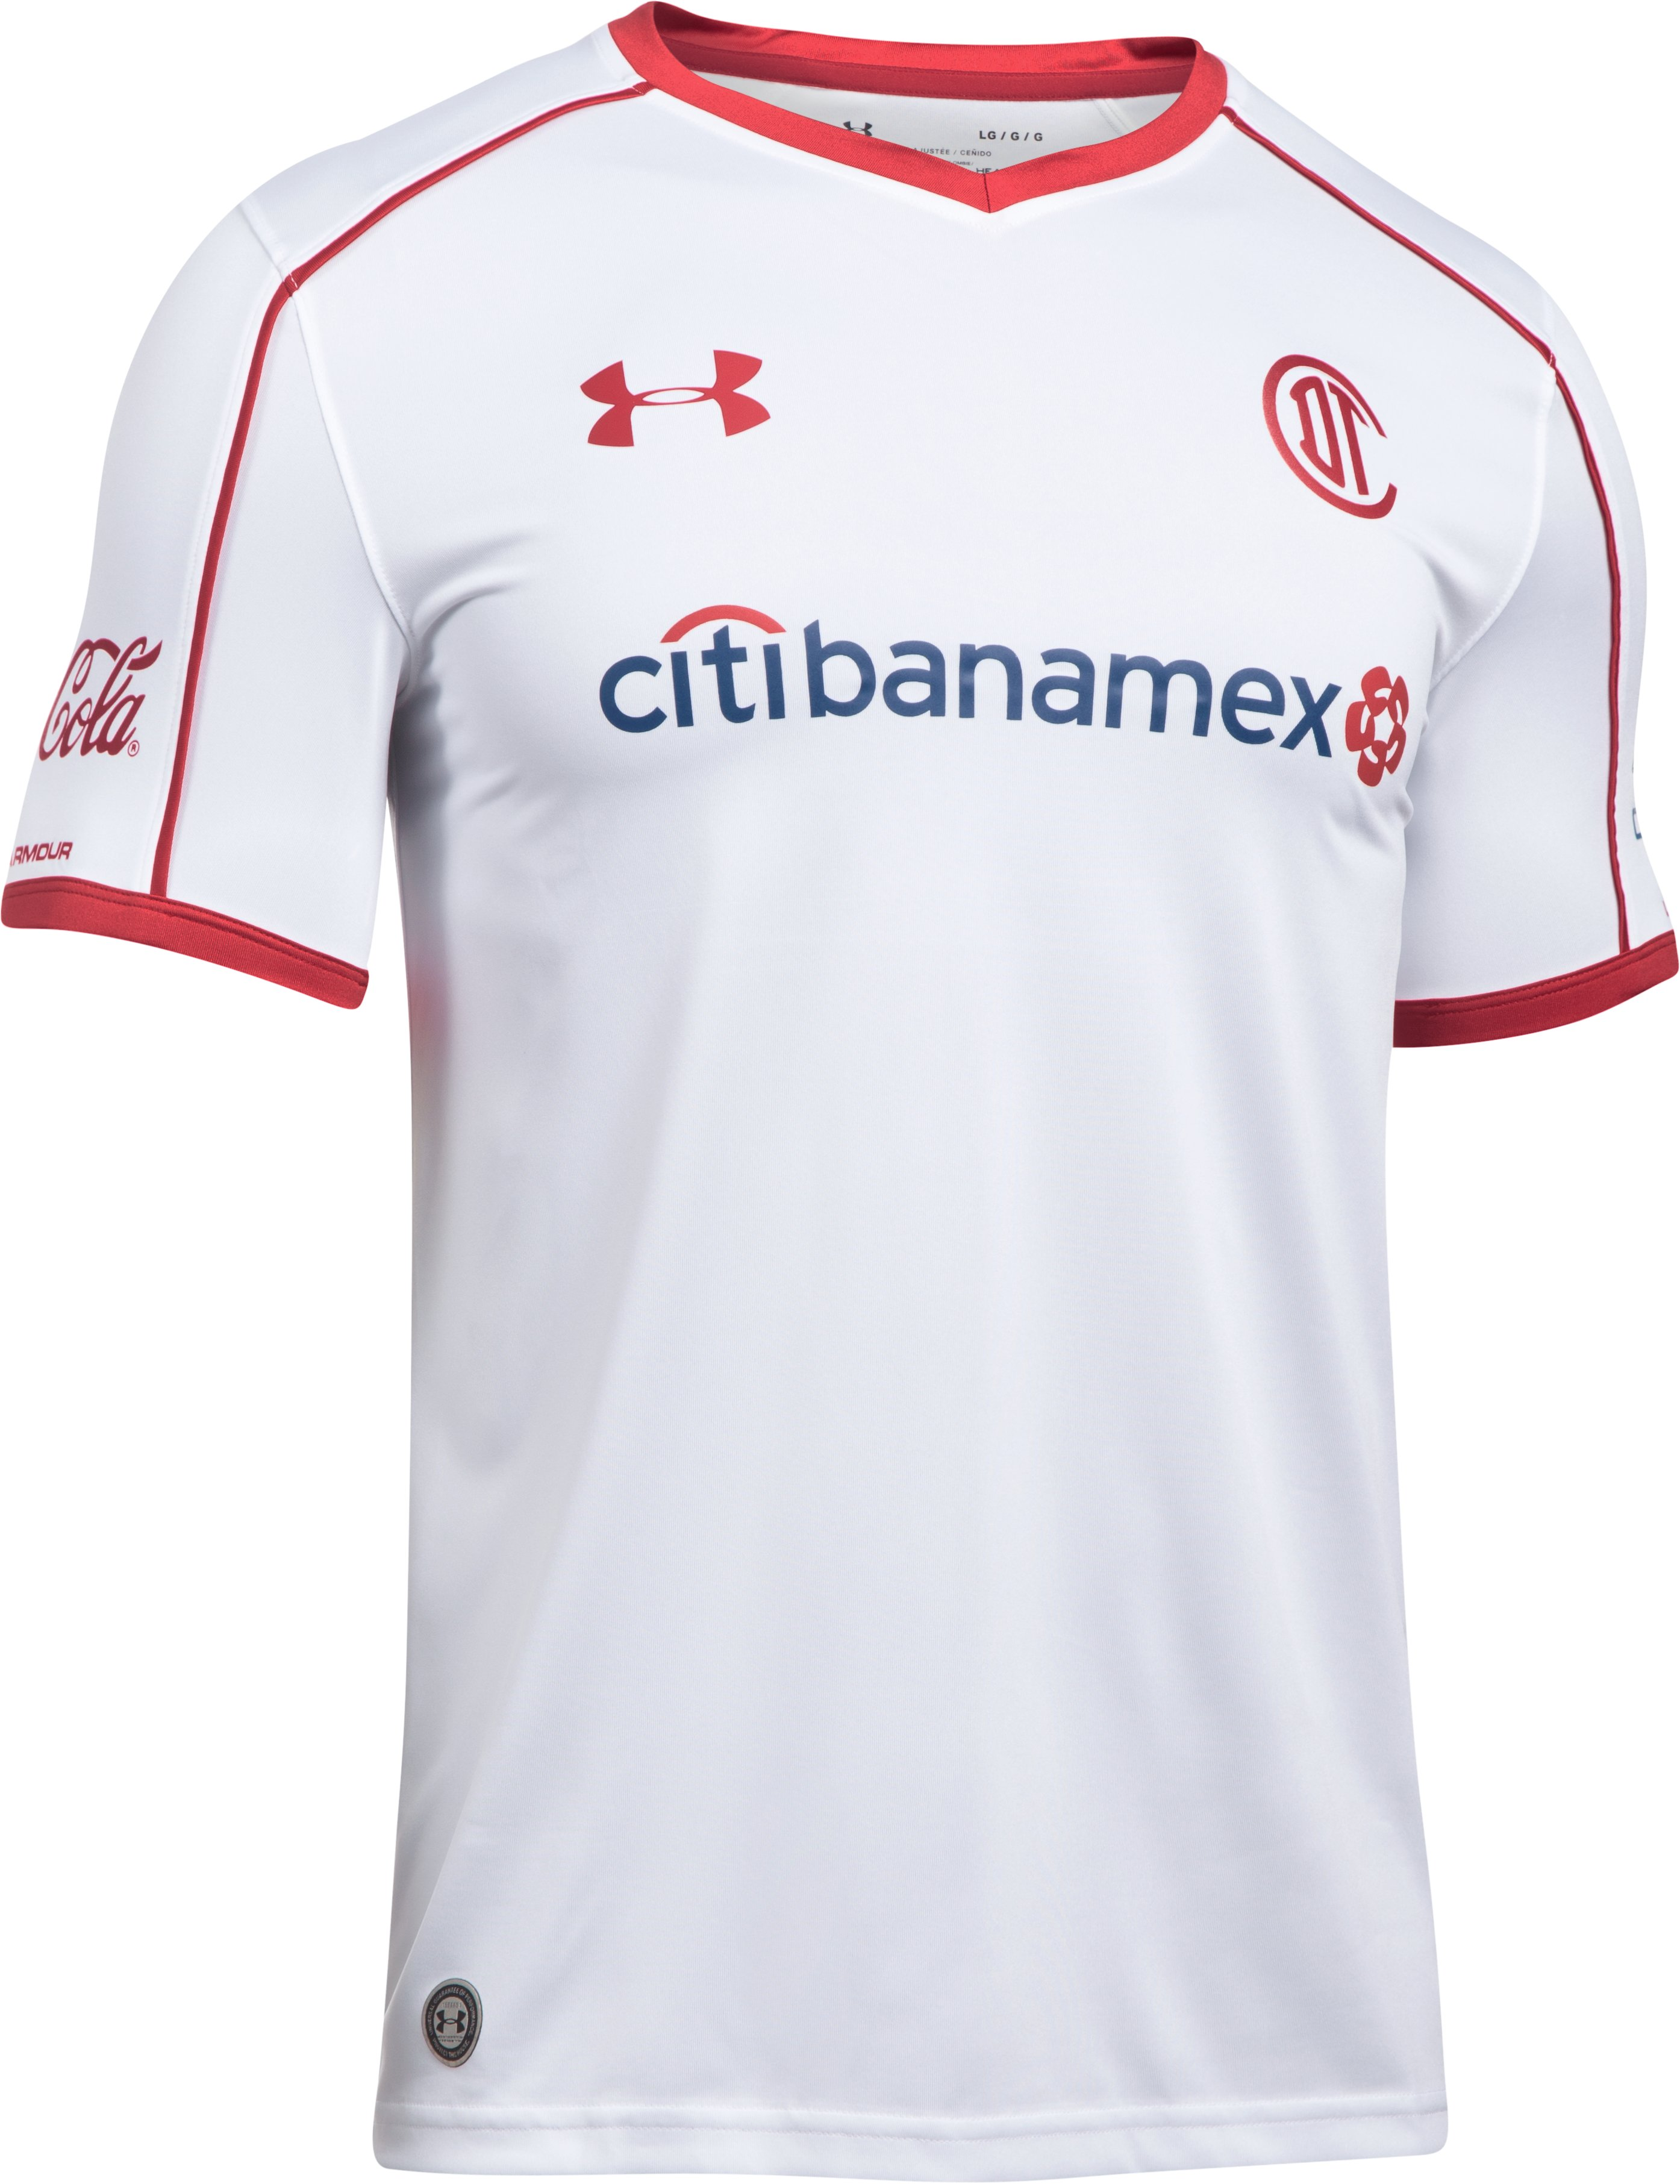 Men's Toluca Replica Home/Away Jersey, White, undefined